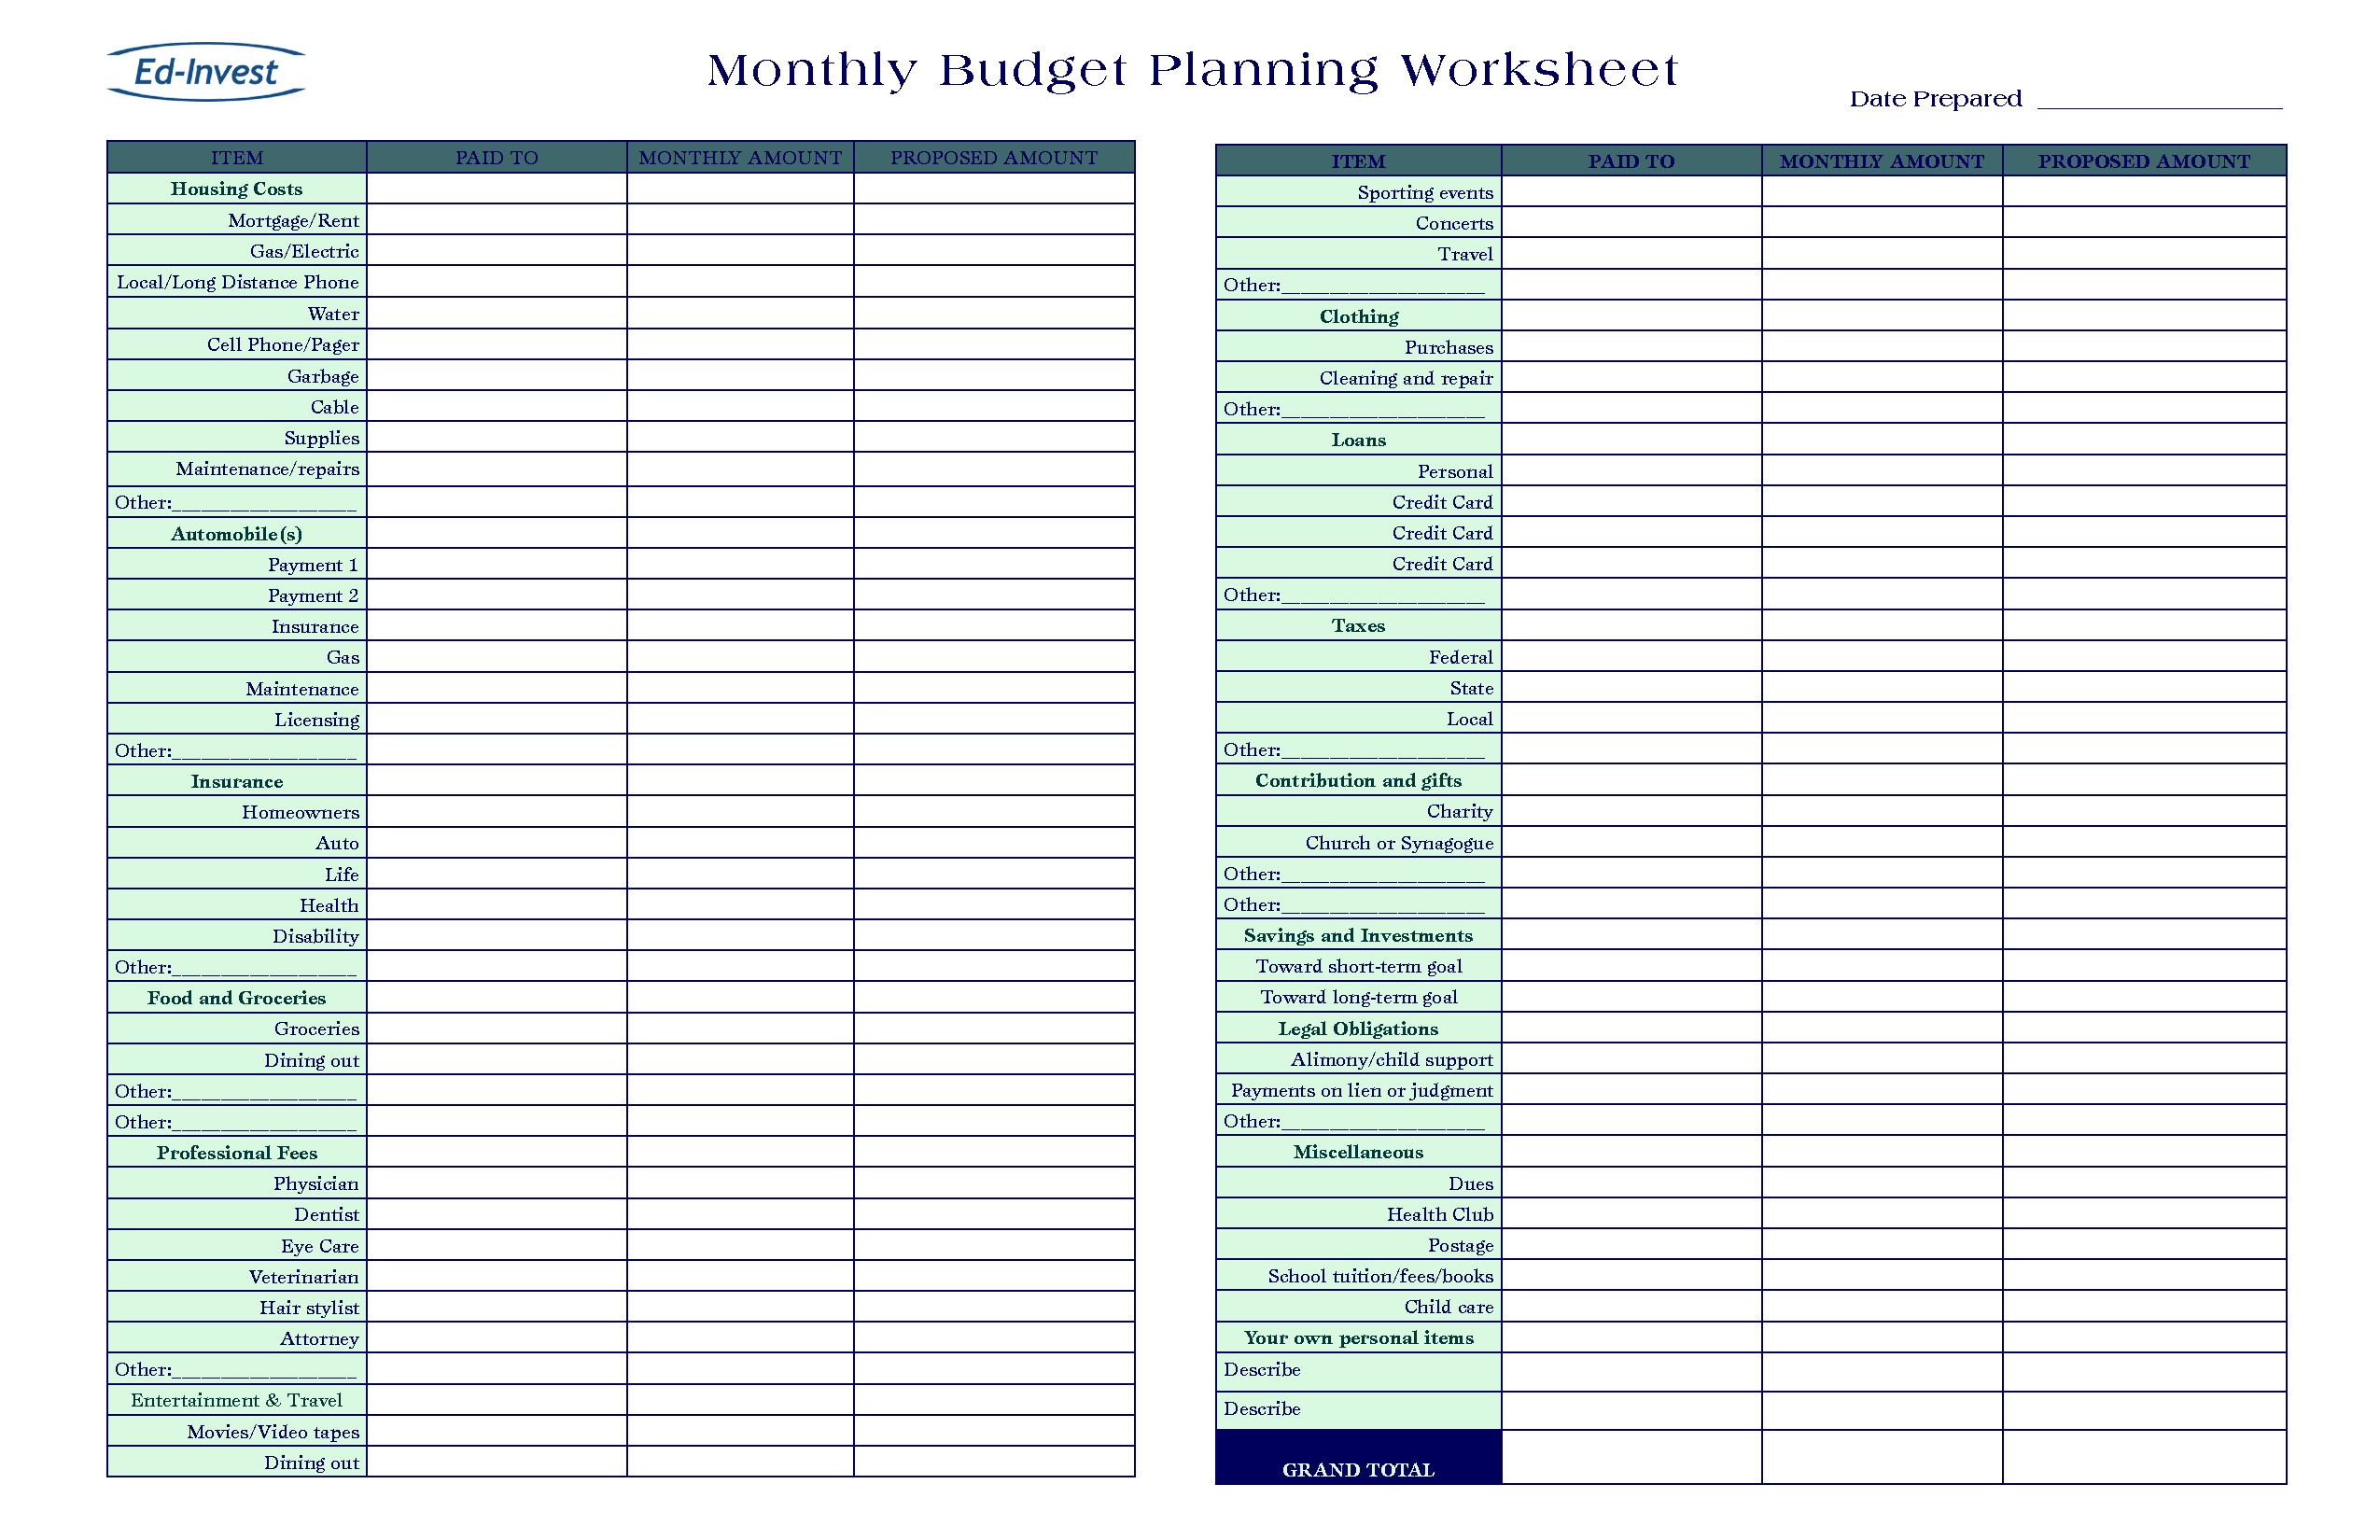 Budget Spreadsheet Google Docs With Regard To Personal Budget Spreadsheet Google Docs  Q O U N With Personal